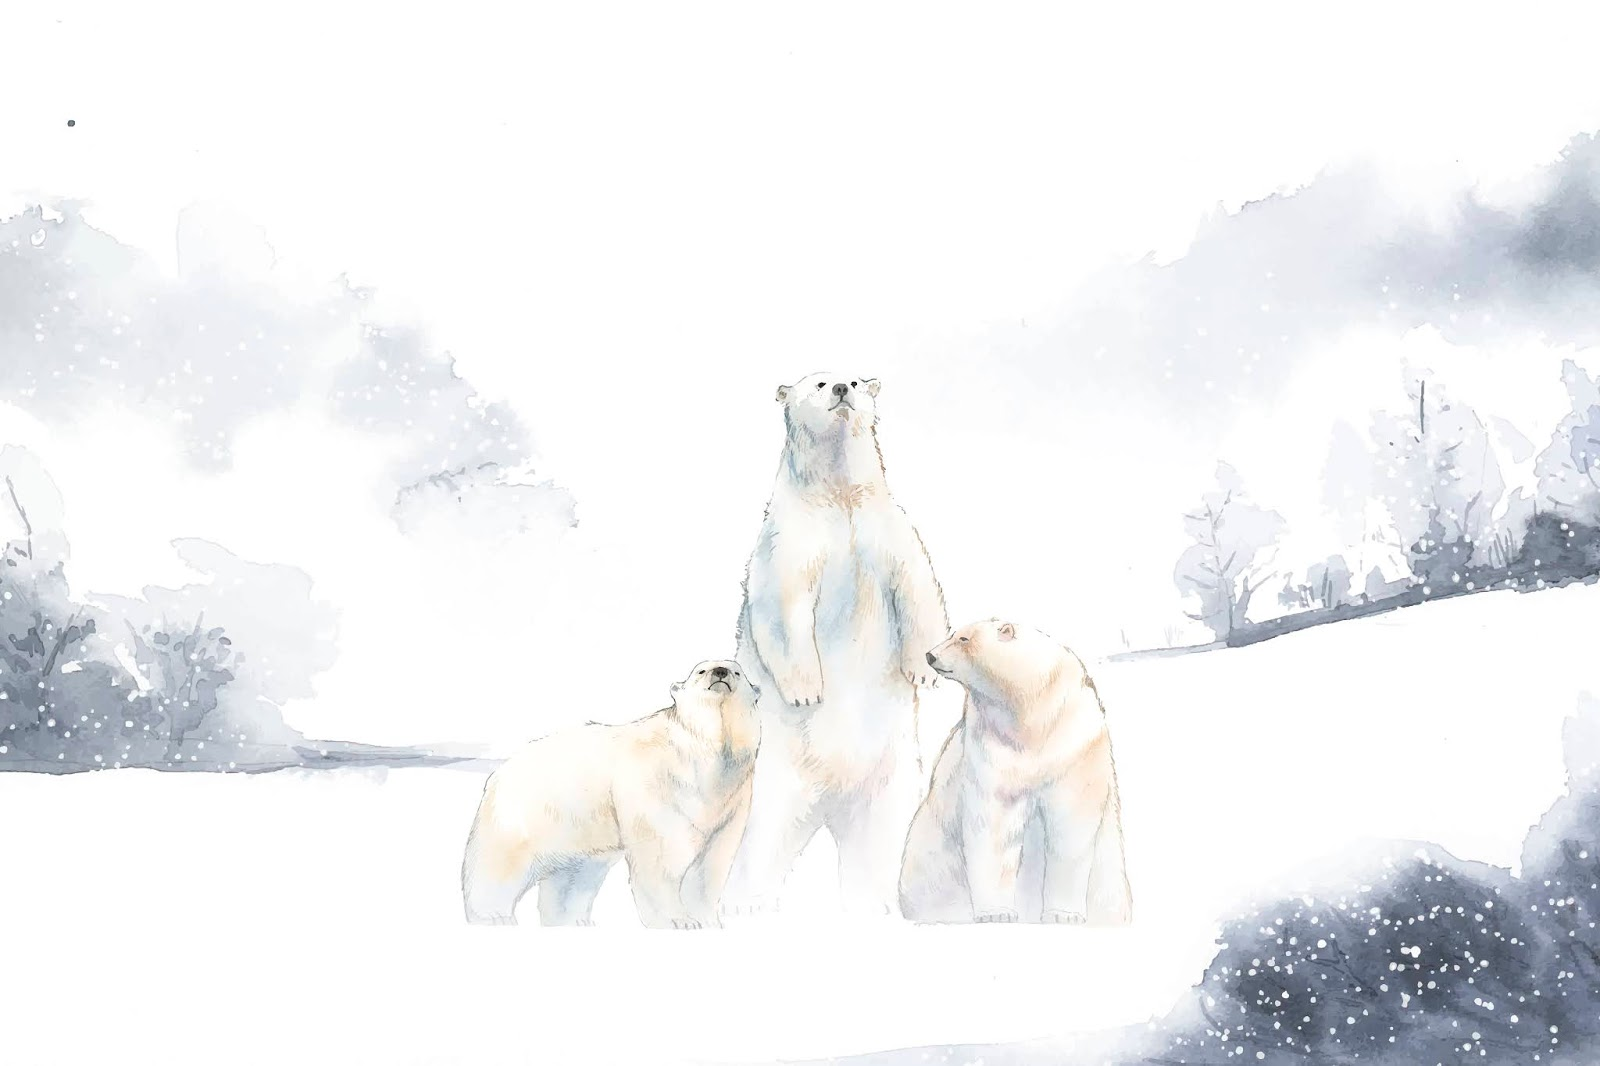 Polar Bears Snow Watercolor Vector Free Download Vector CDR, AI, EPS and PNG Formats